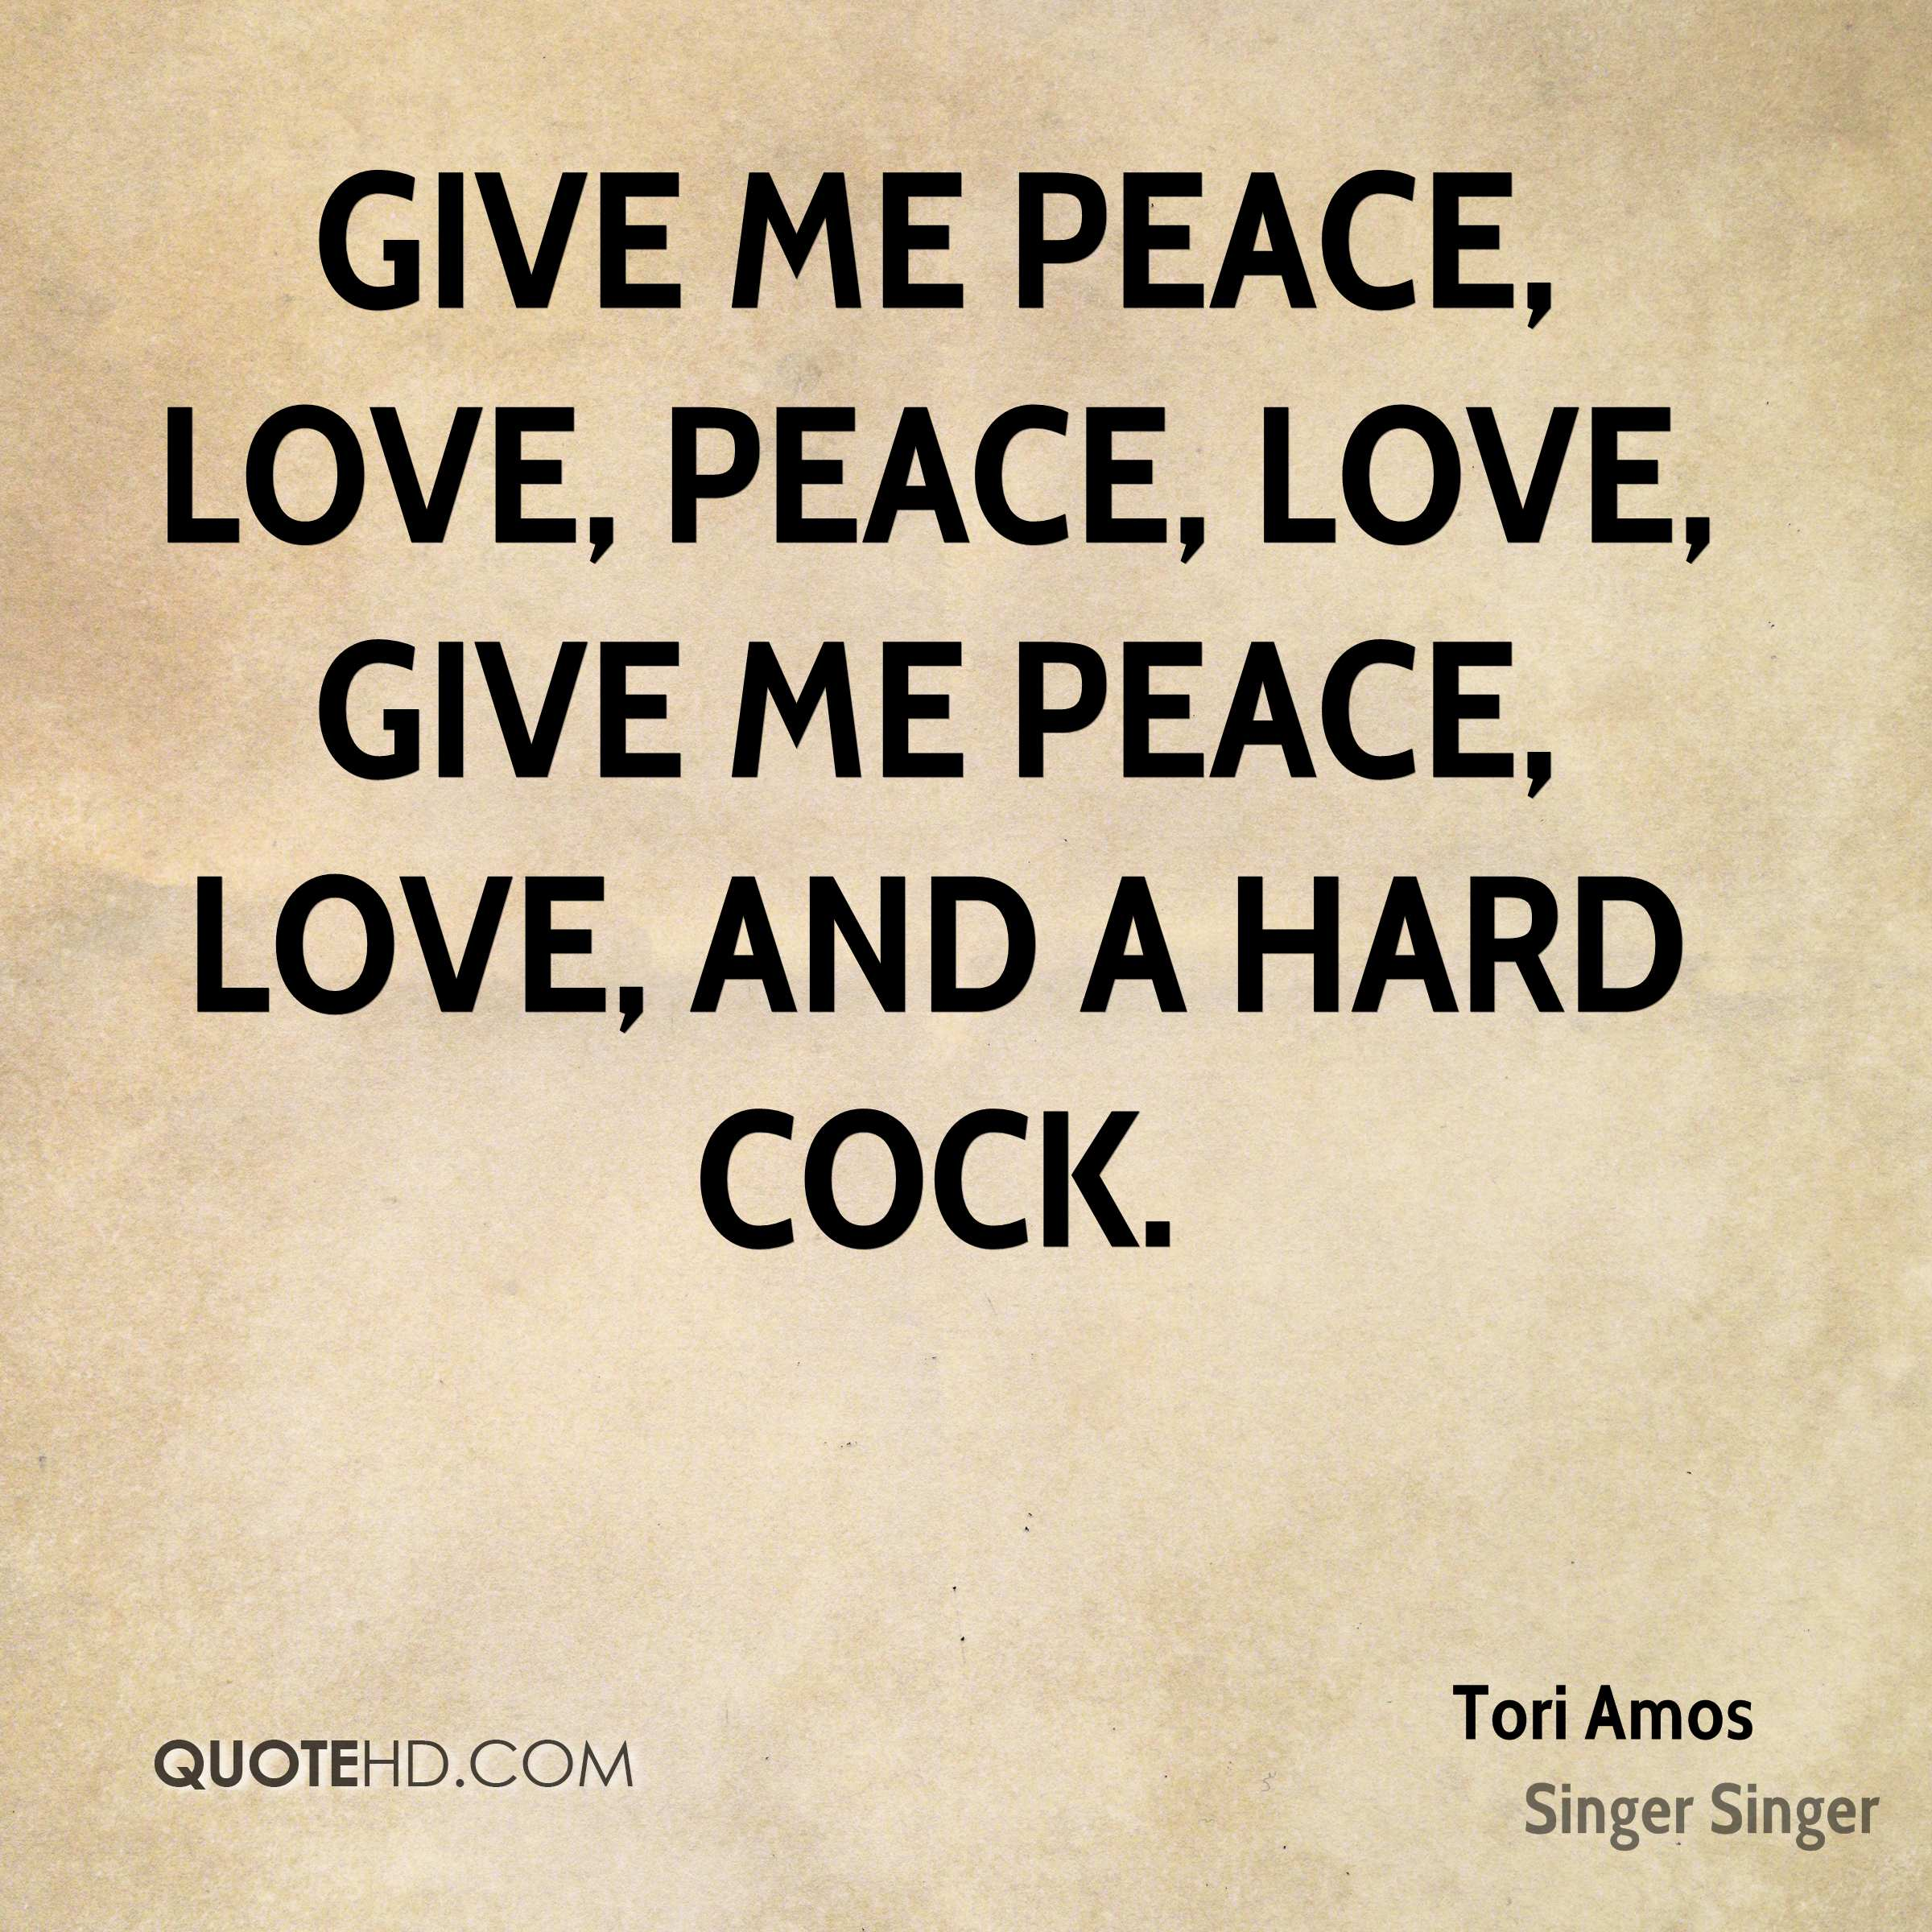 Love Peace Quotes Tori Amos Quotes  Quotehd